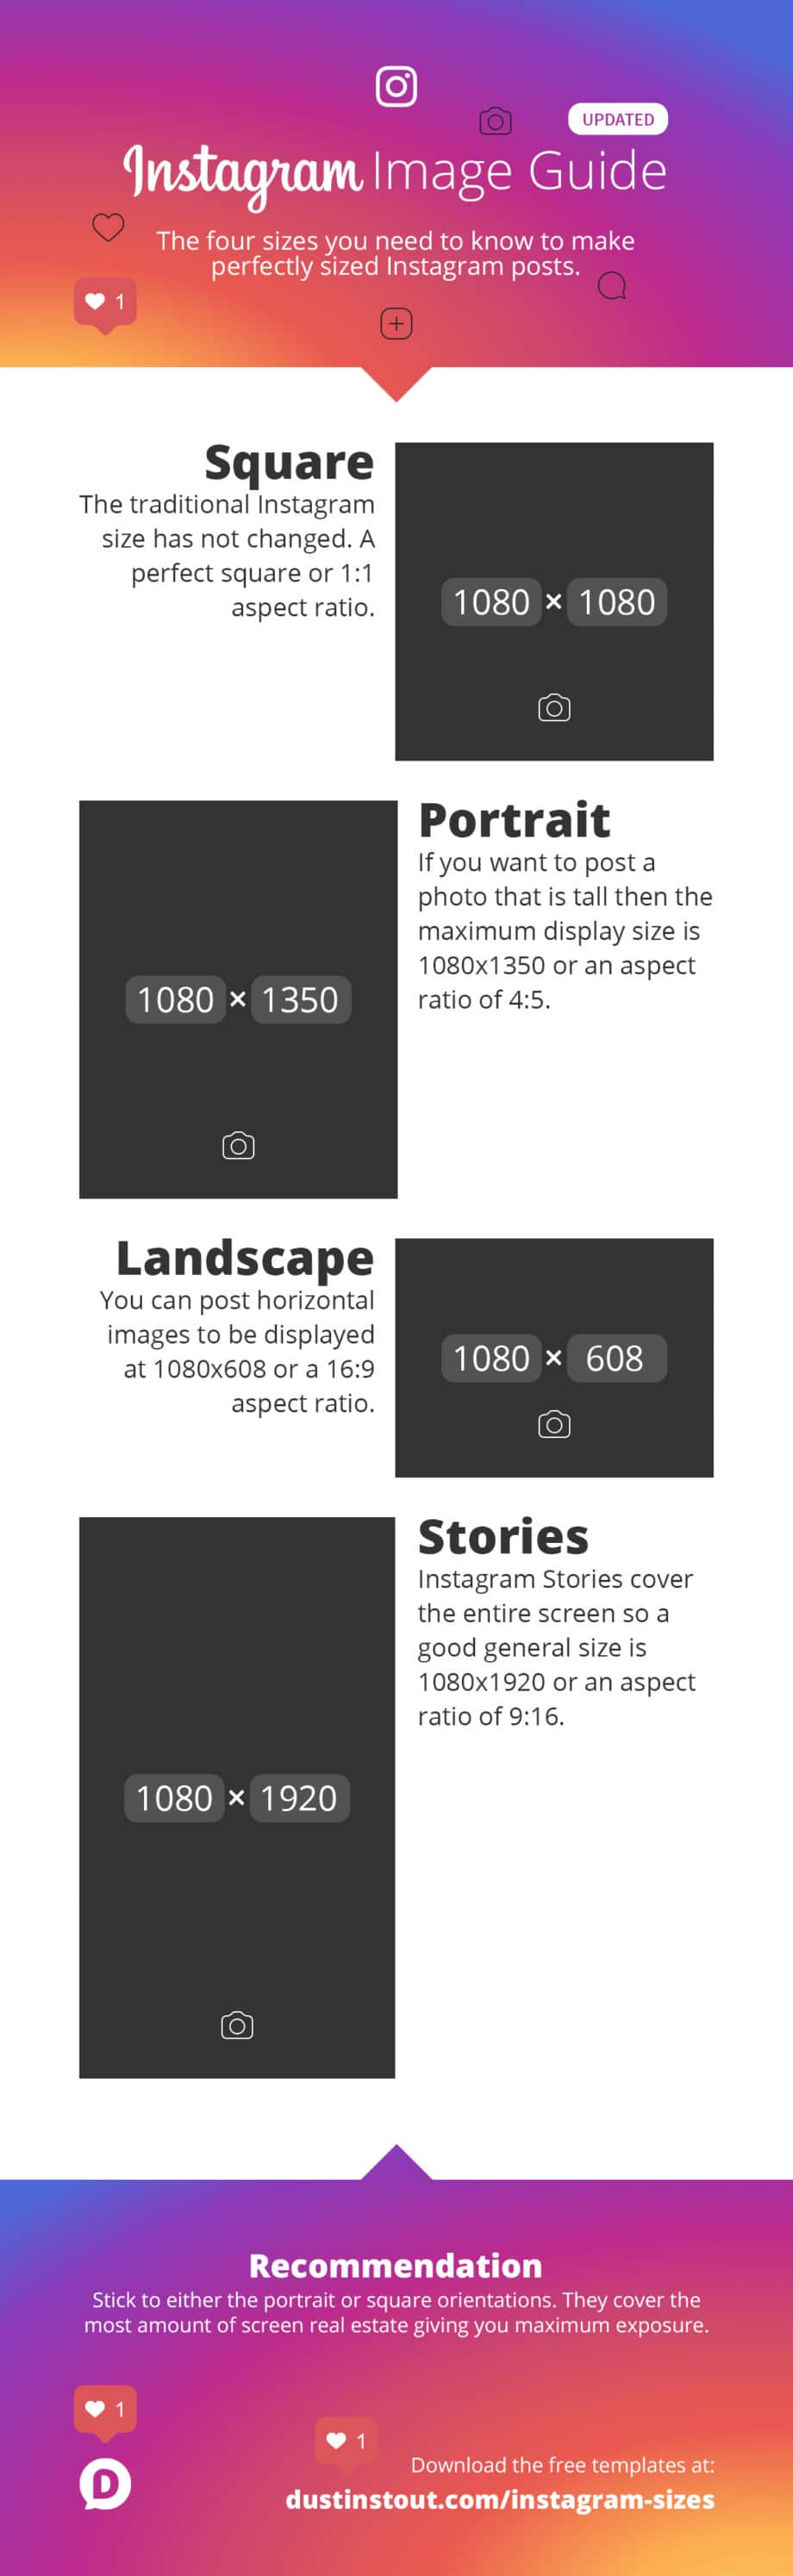 instagram image sizes infographic